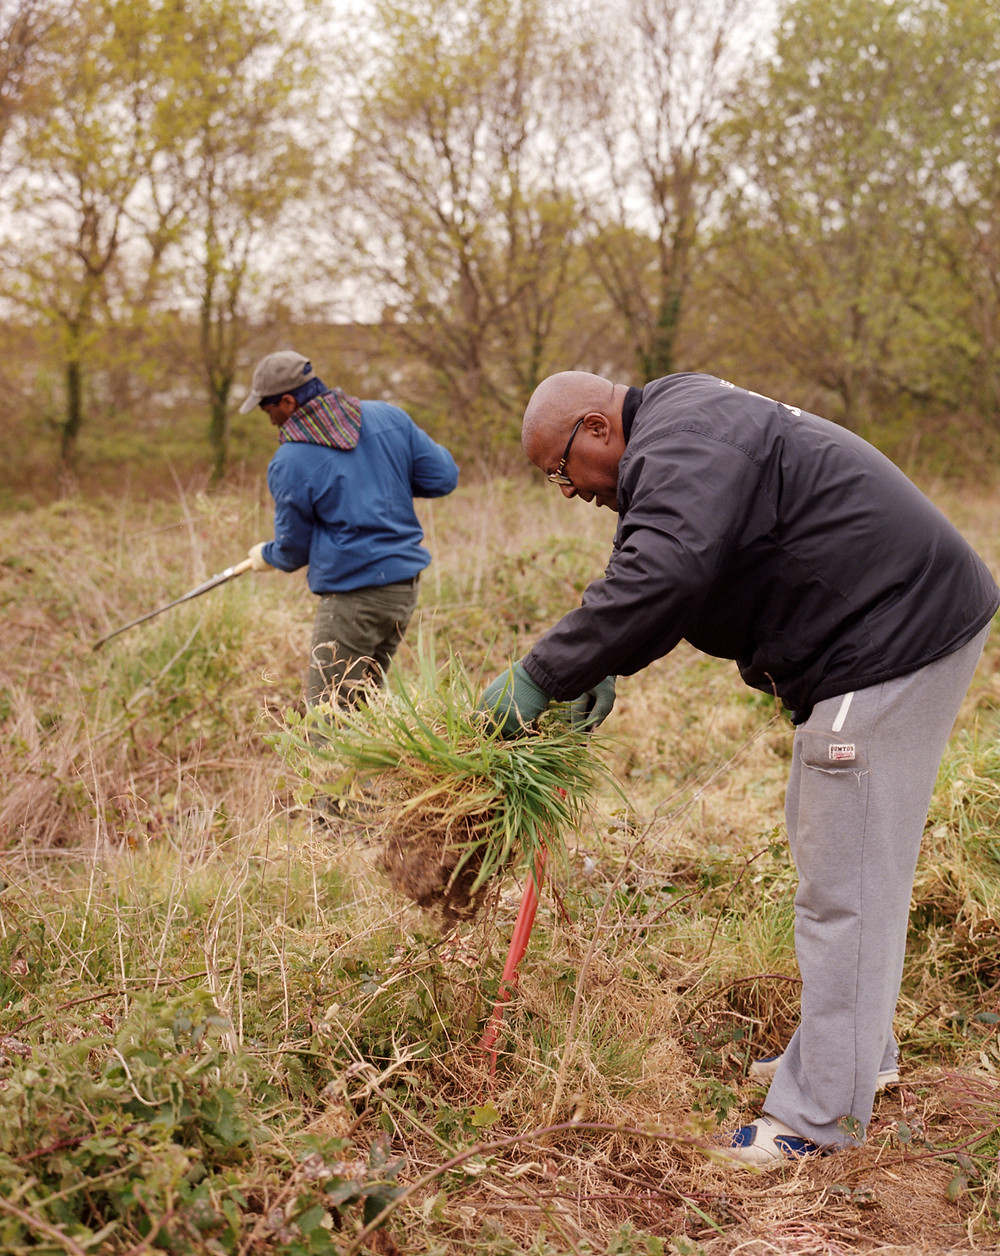 Two people work in a field, one holding garden waste, the other using a hoe.